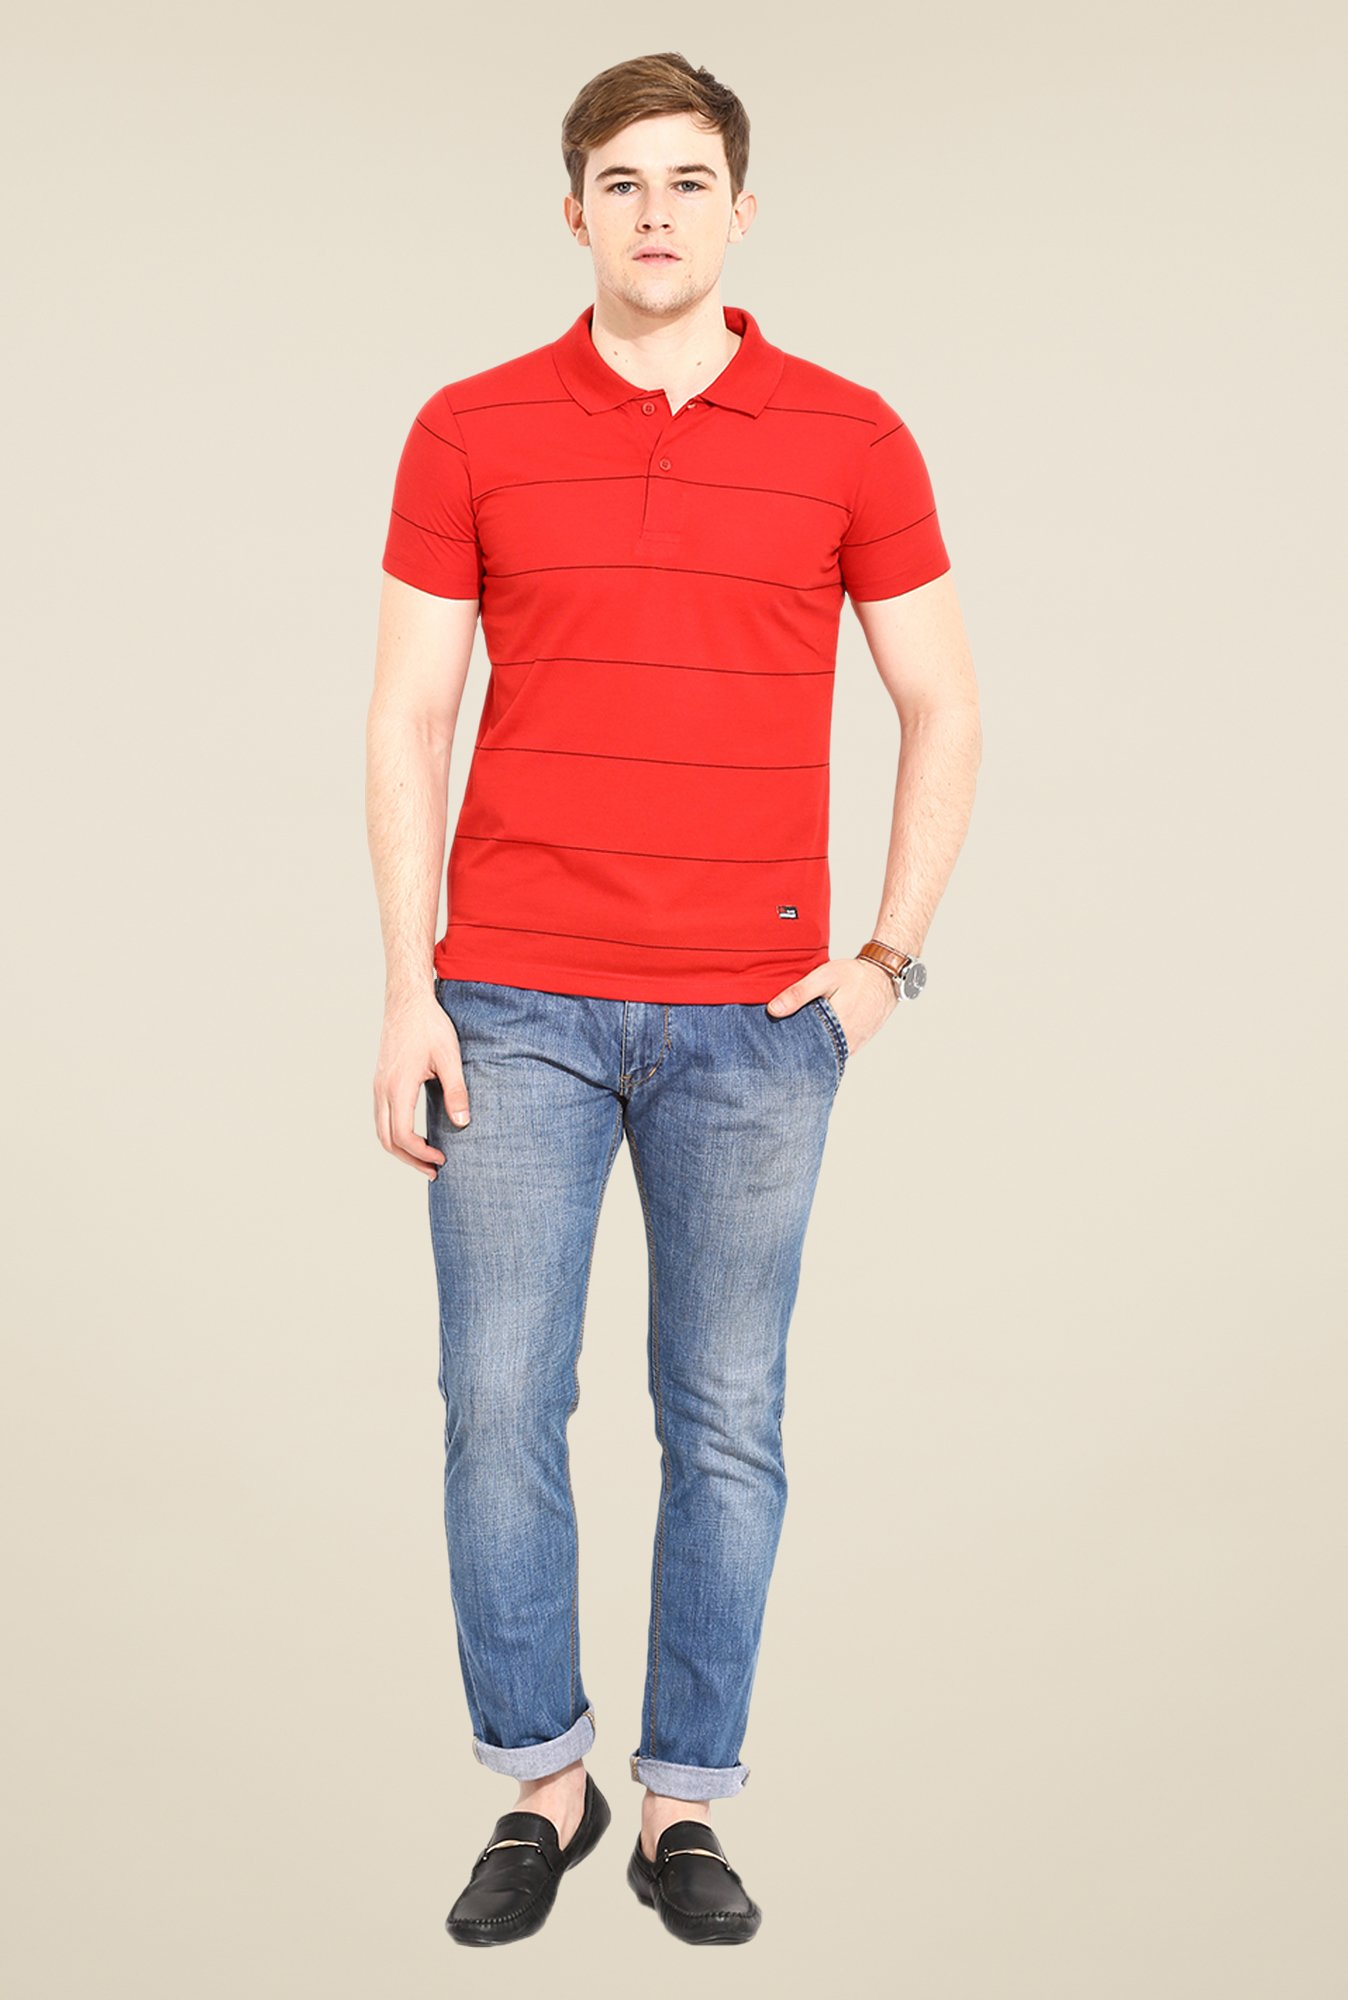 Duke Stardust Red Striped T Shirt